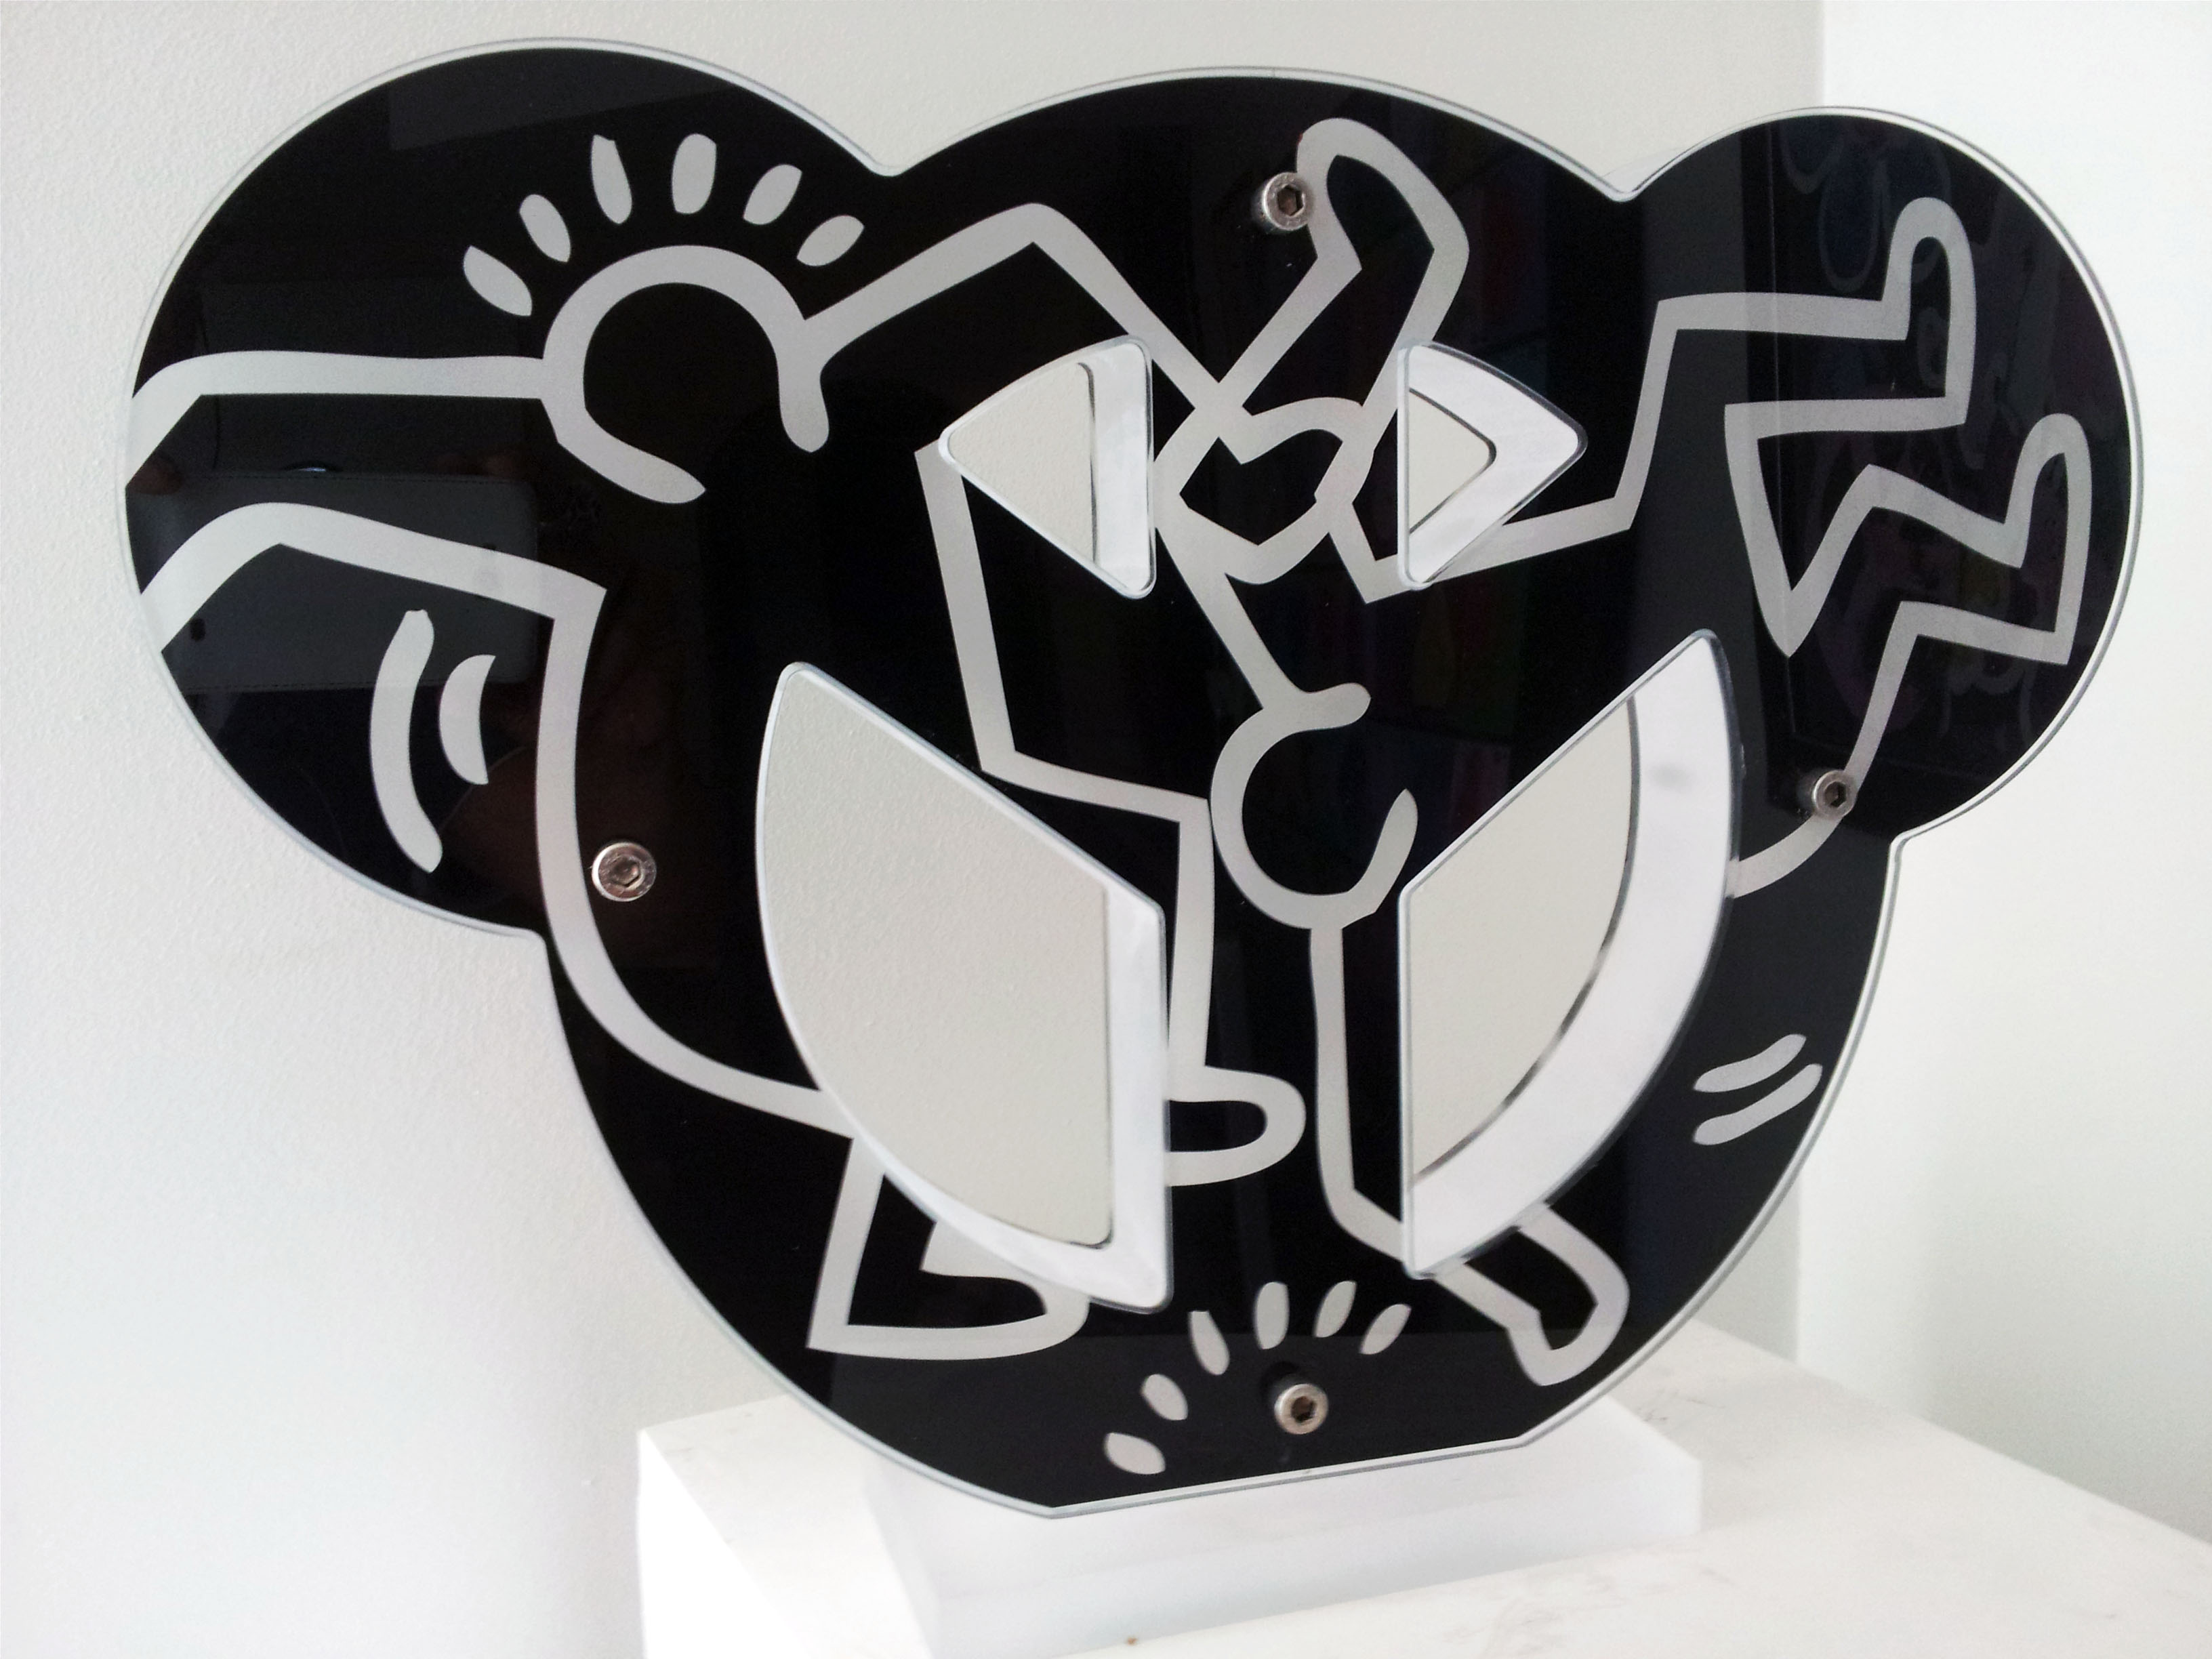 Hommage Keith Haring Black - 35x50cm